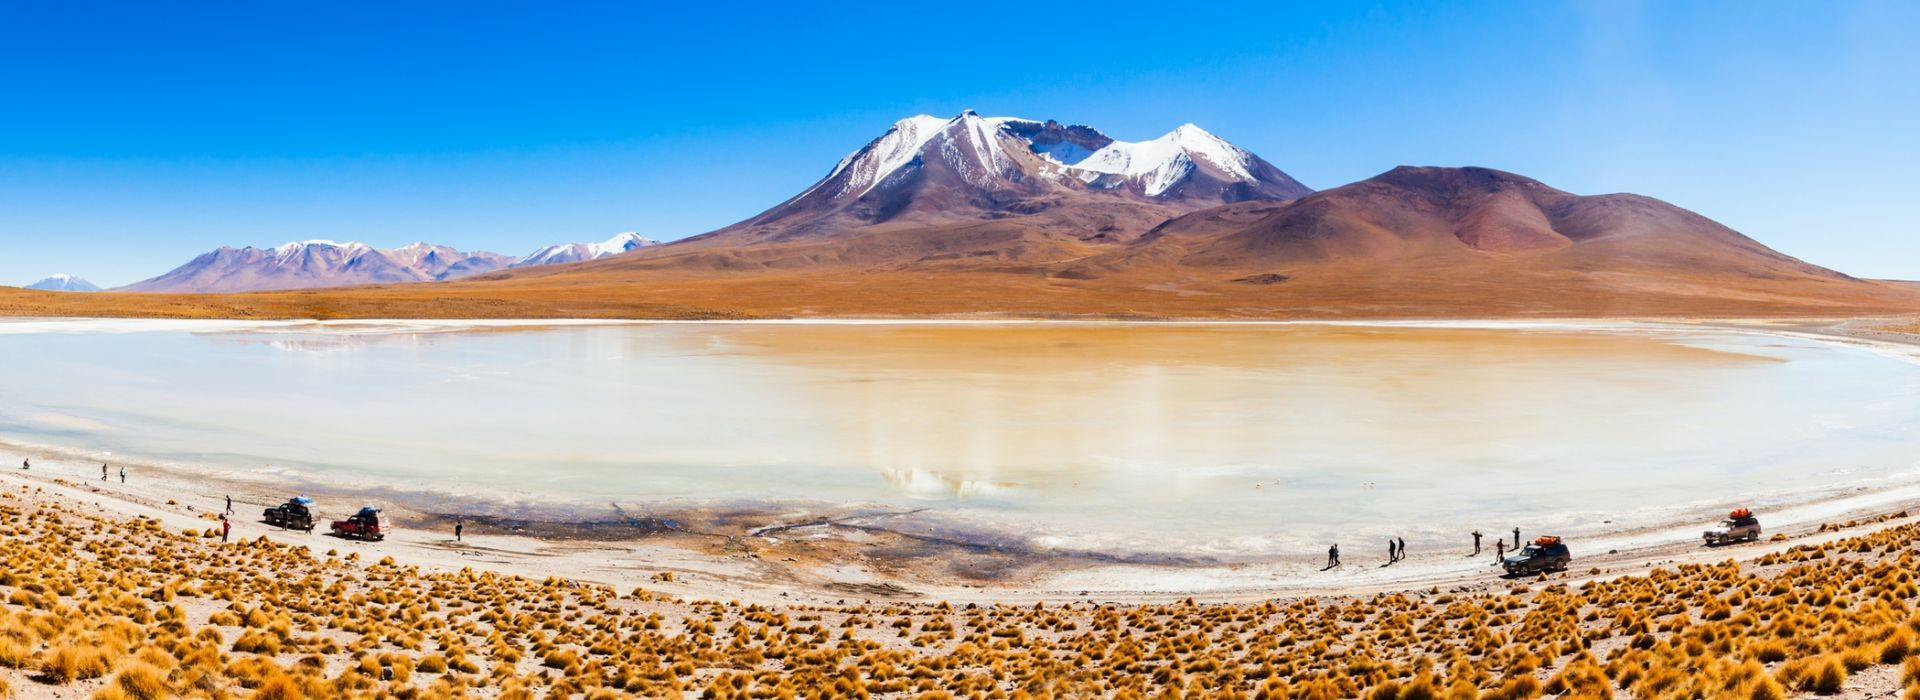 Cultural, religious and historic sites Tours in La Paz